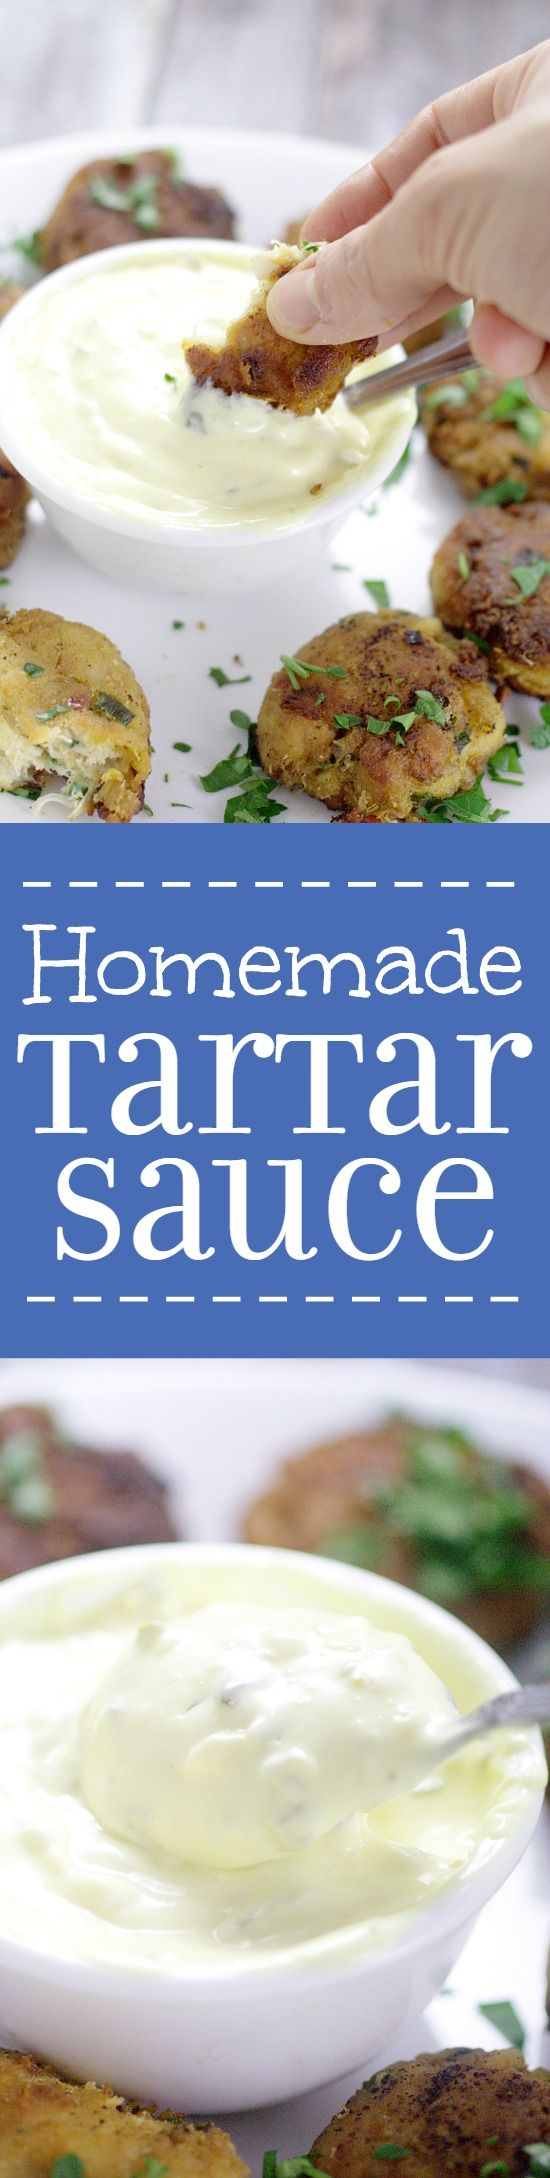 Homemade Tartar Sauce is super easy to make! Make this creamy, tangy Homemade Tartar Sauce recipe in just 5 minutes to go perfectly with your favorite fish dish! Yum!